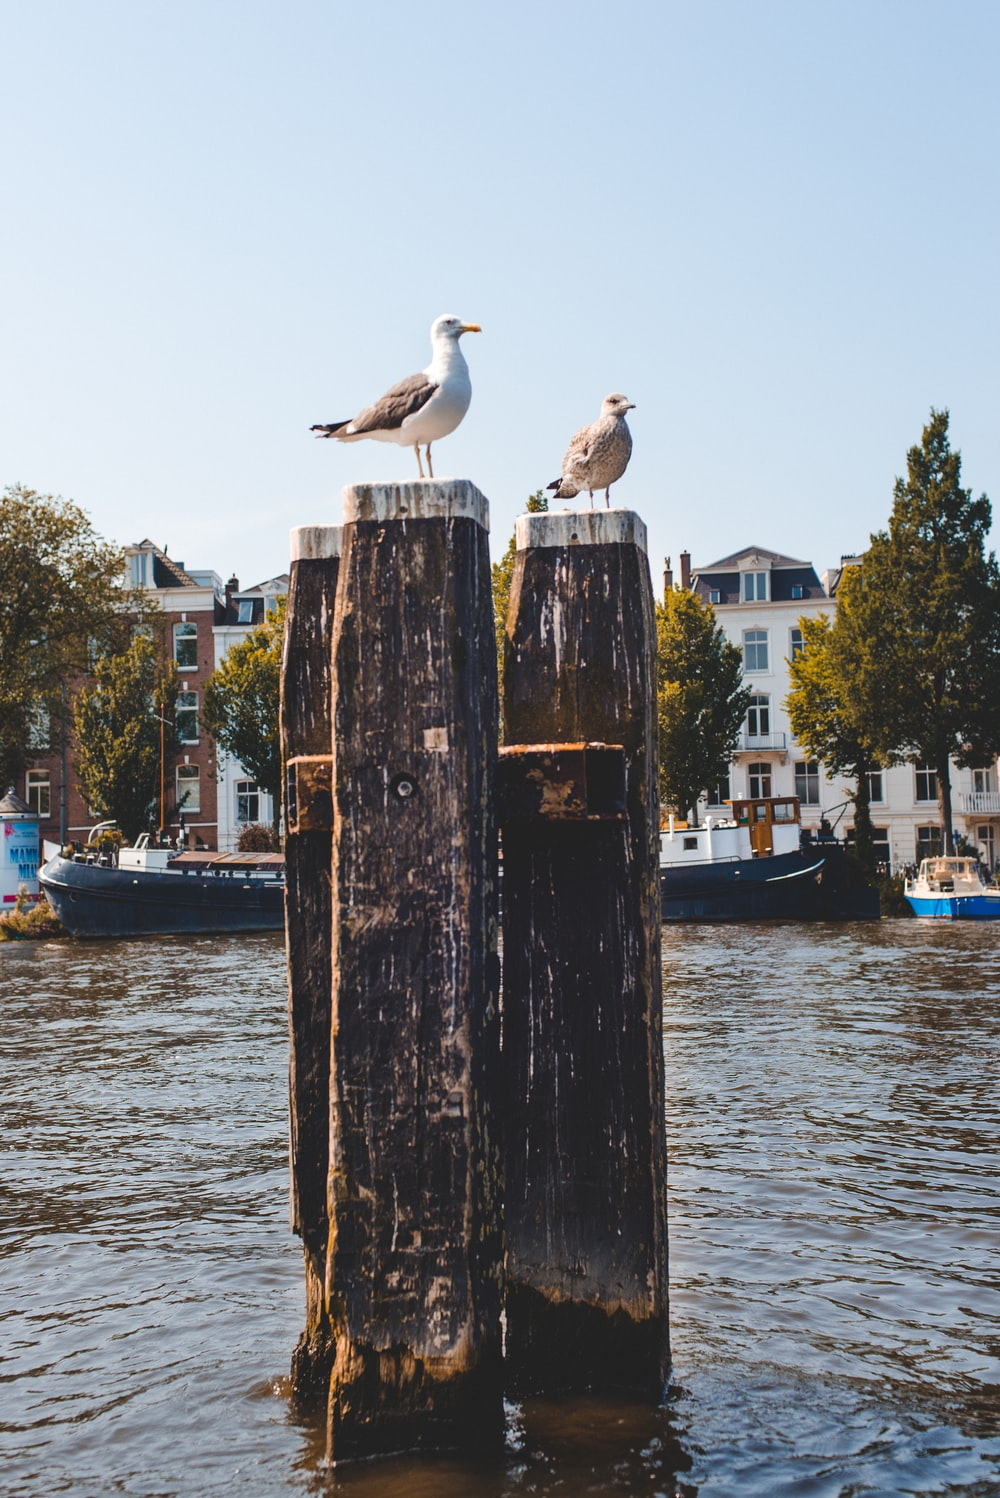 two birds sitting on wood posts in water